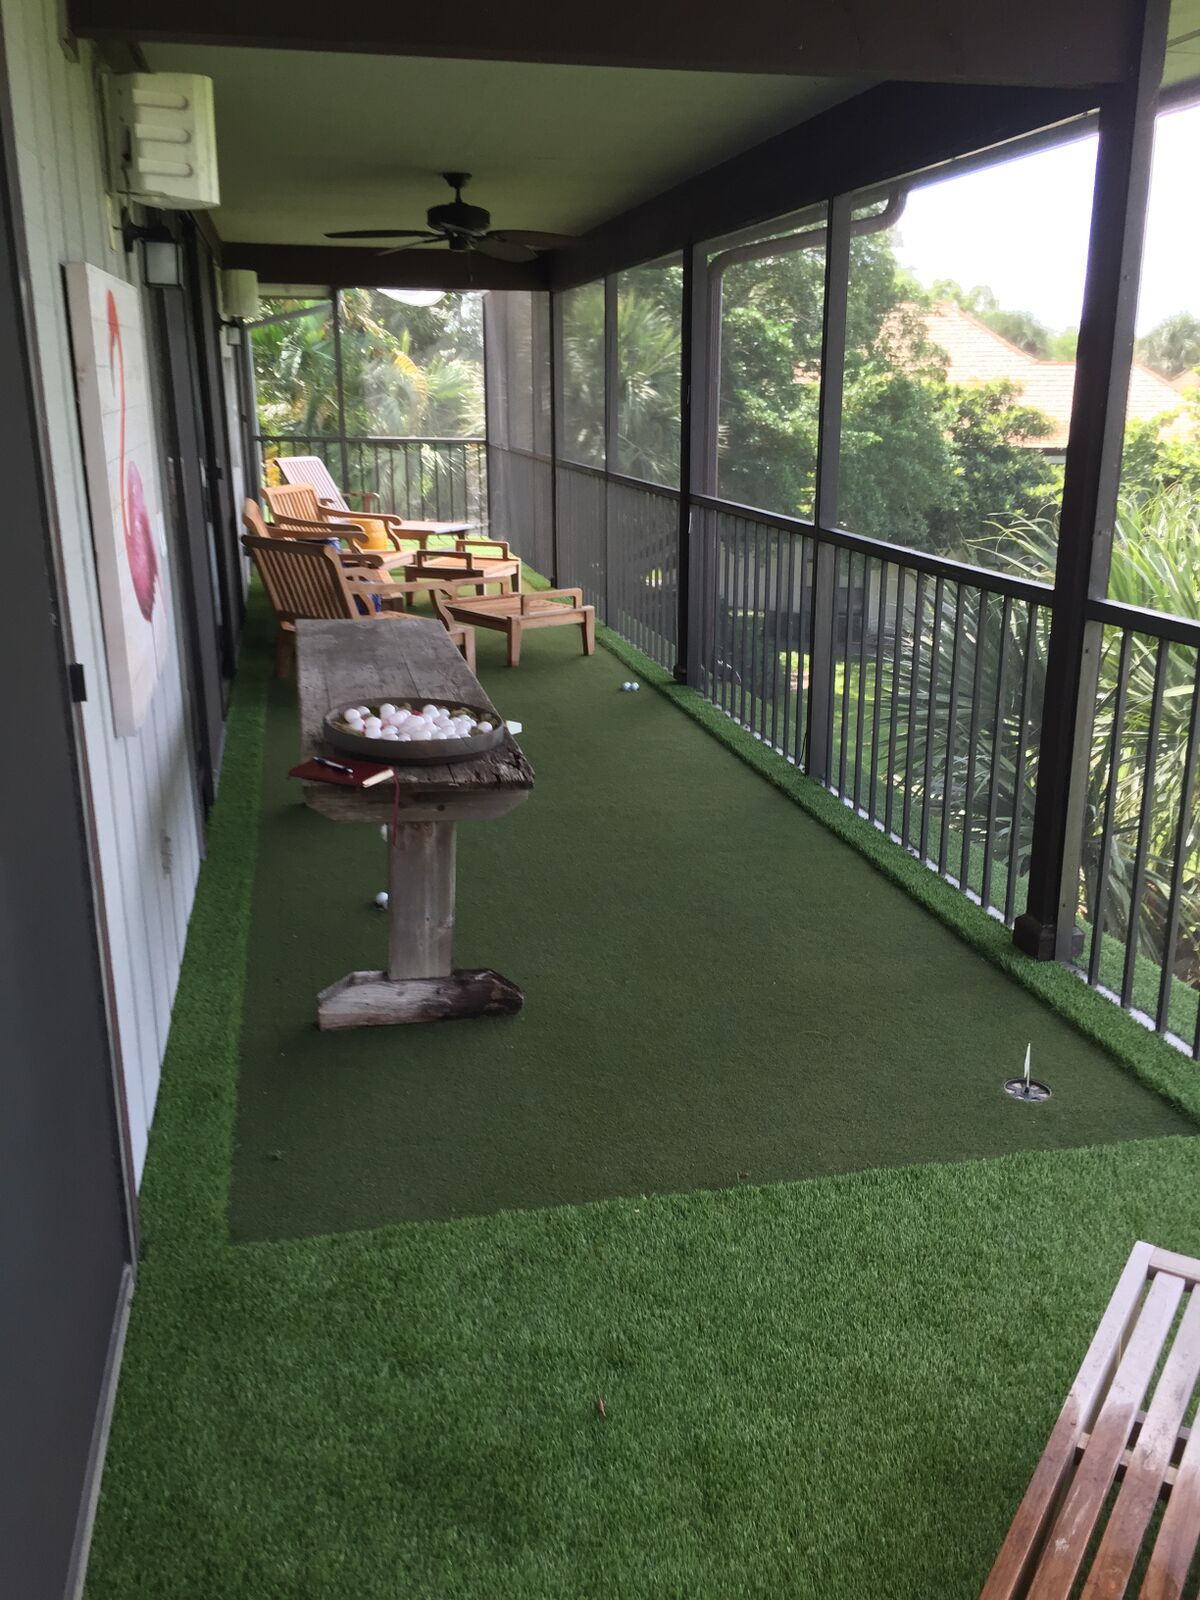 Where is the best fake grass west palm beach?